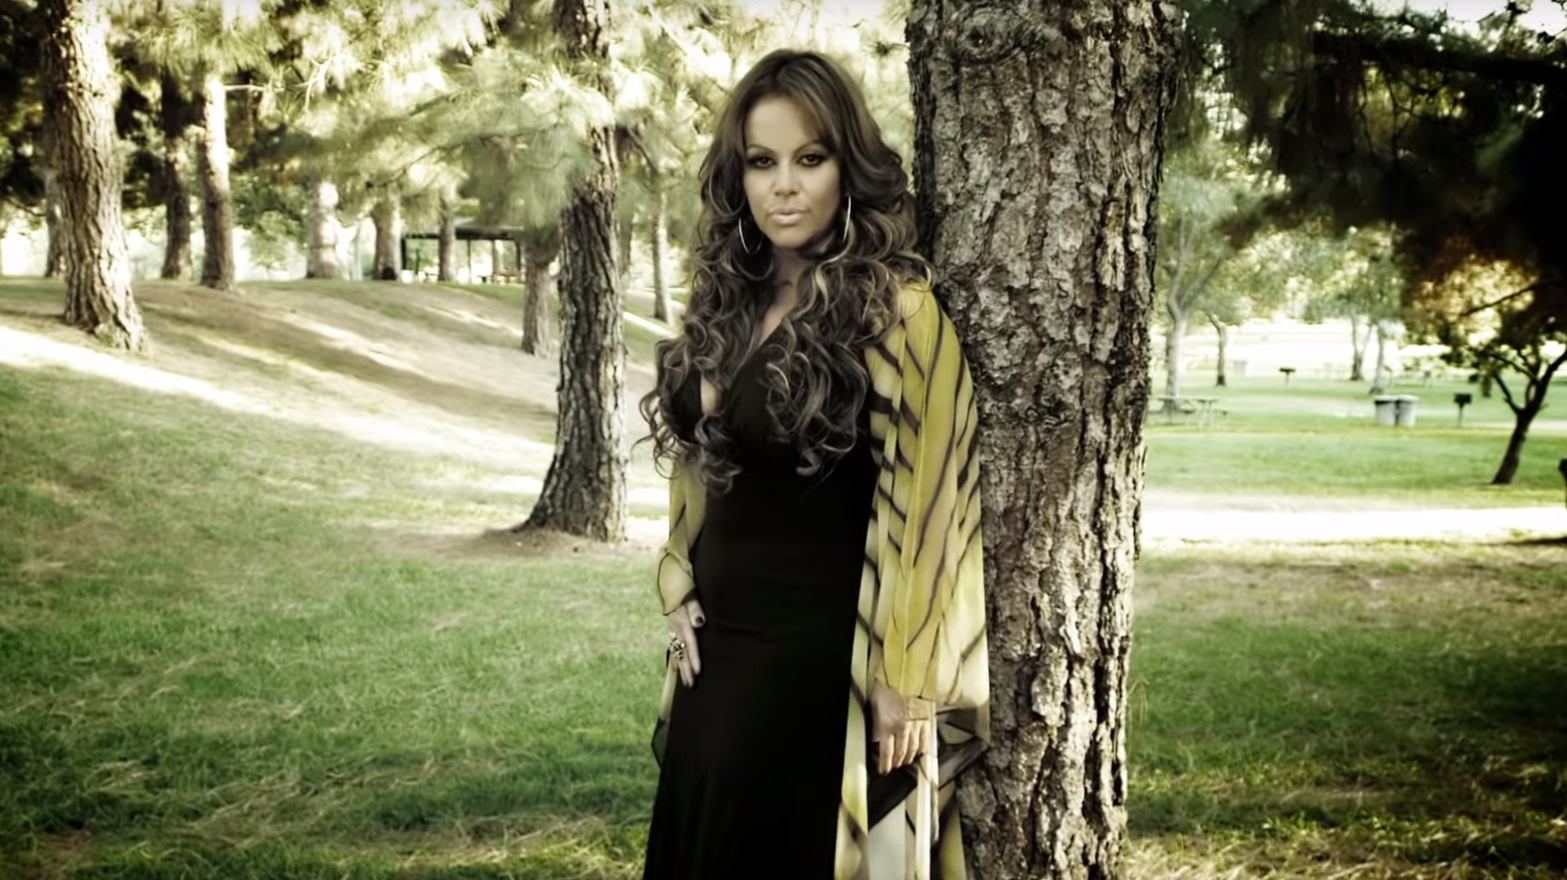 jenni-rivera-when-she-was-pregnant-sex